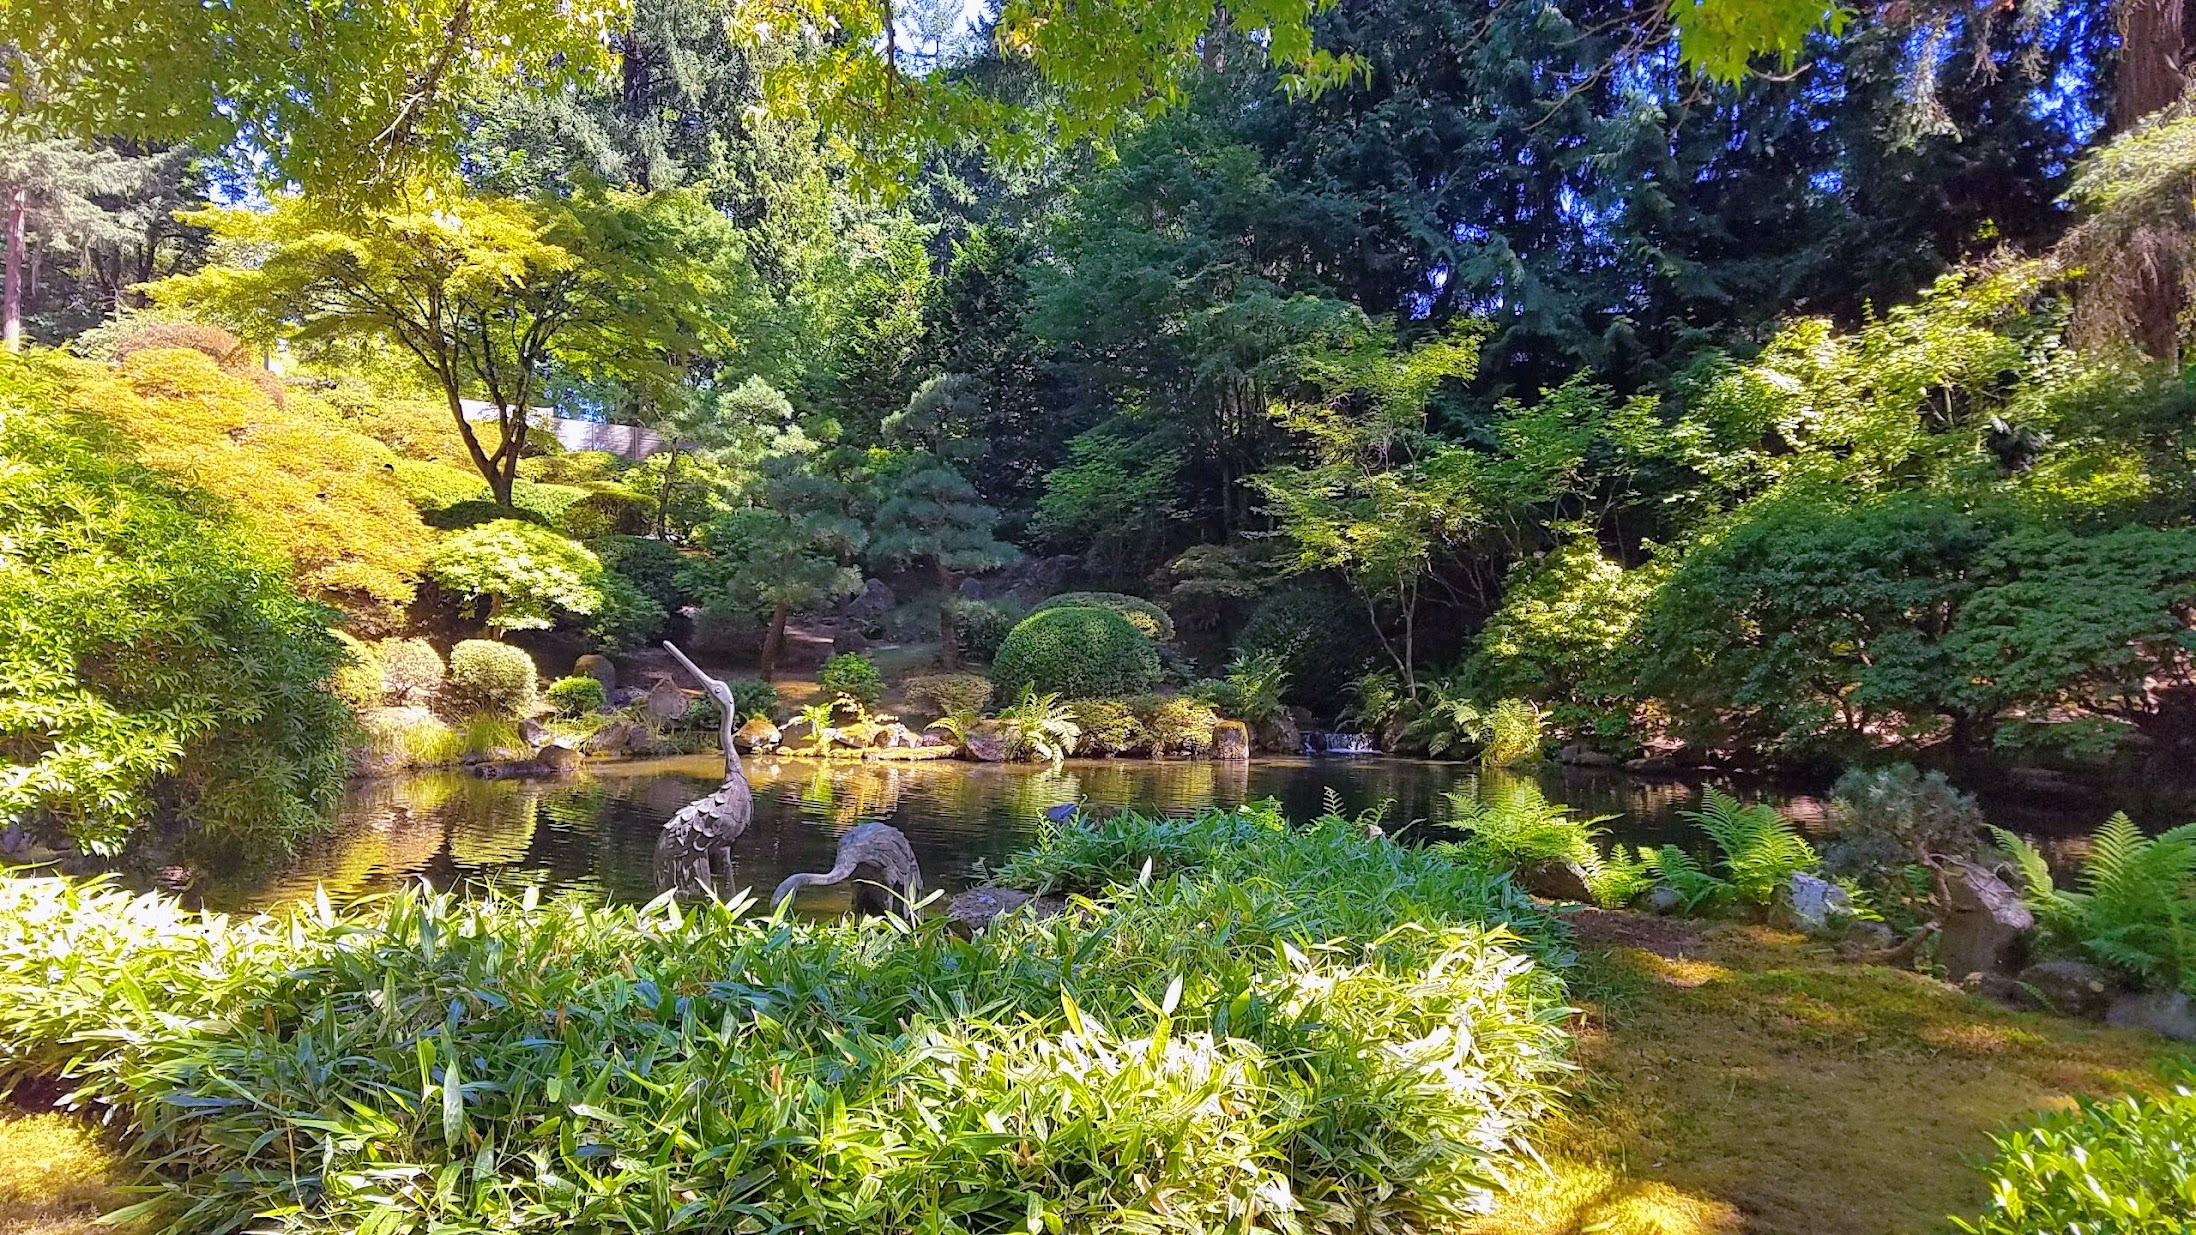 Visiting the Portland Japanese Garden - Strolling Pond Gardens. I cross the Moon Bridge from above by the Upper Pond with its crane sculptures which sometimes also are visited by real cranes.